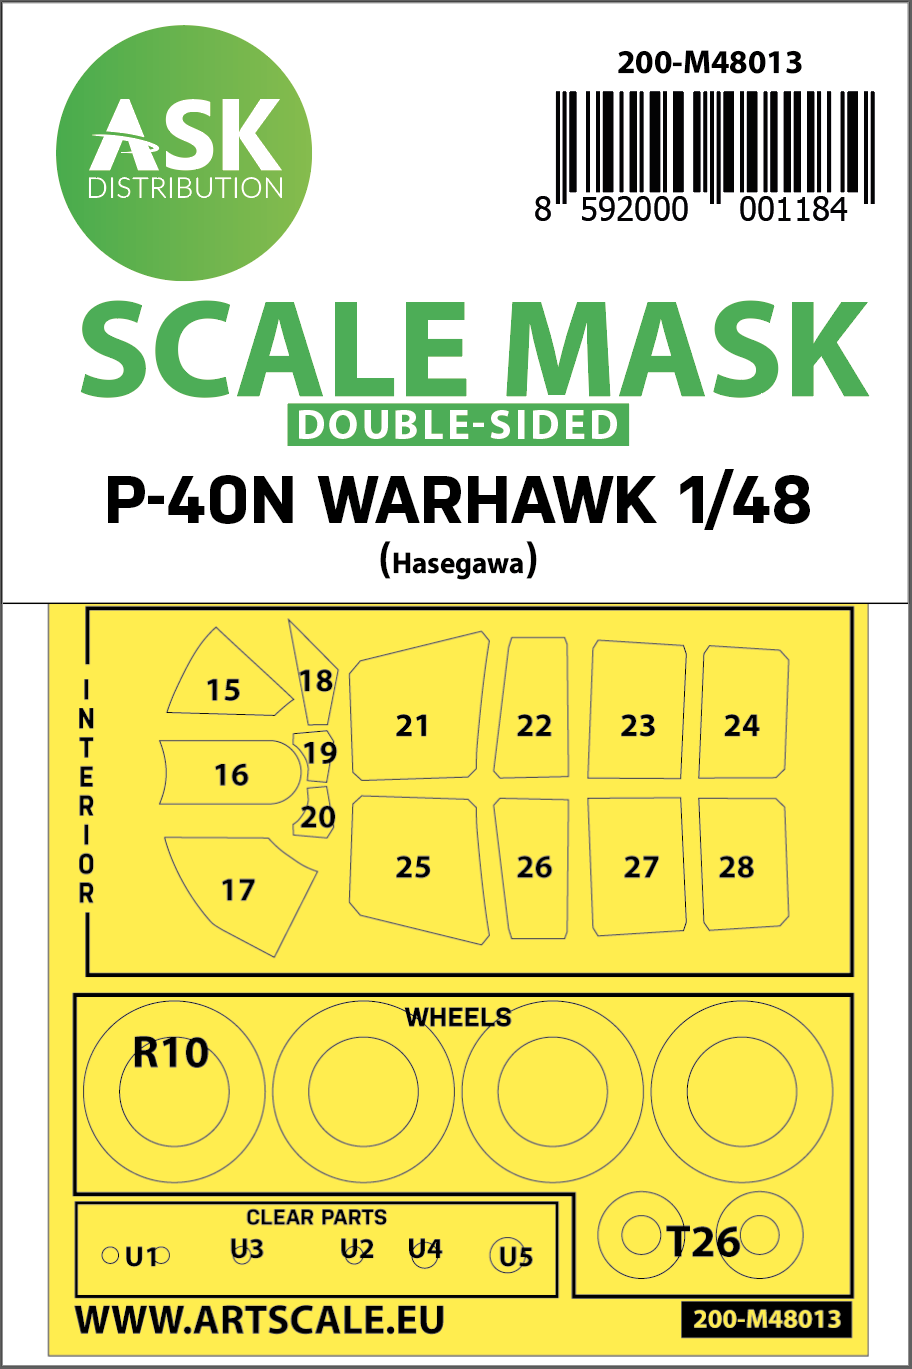 1/48 Curtiss  P-40N Warhawk double-sided painting mask for Hasegawa / Hobby2000